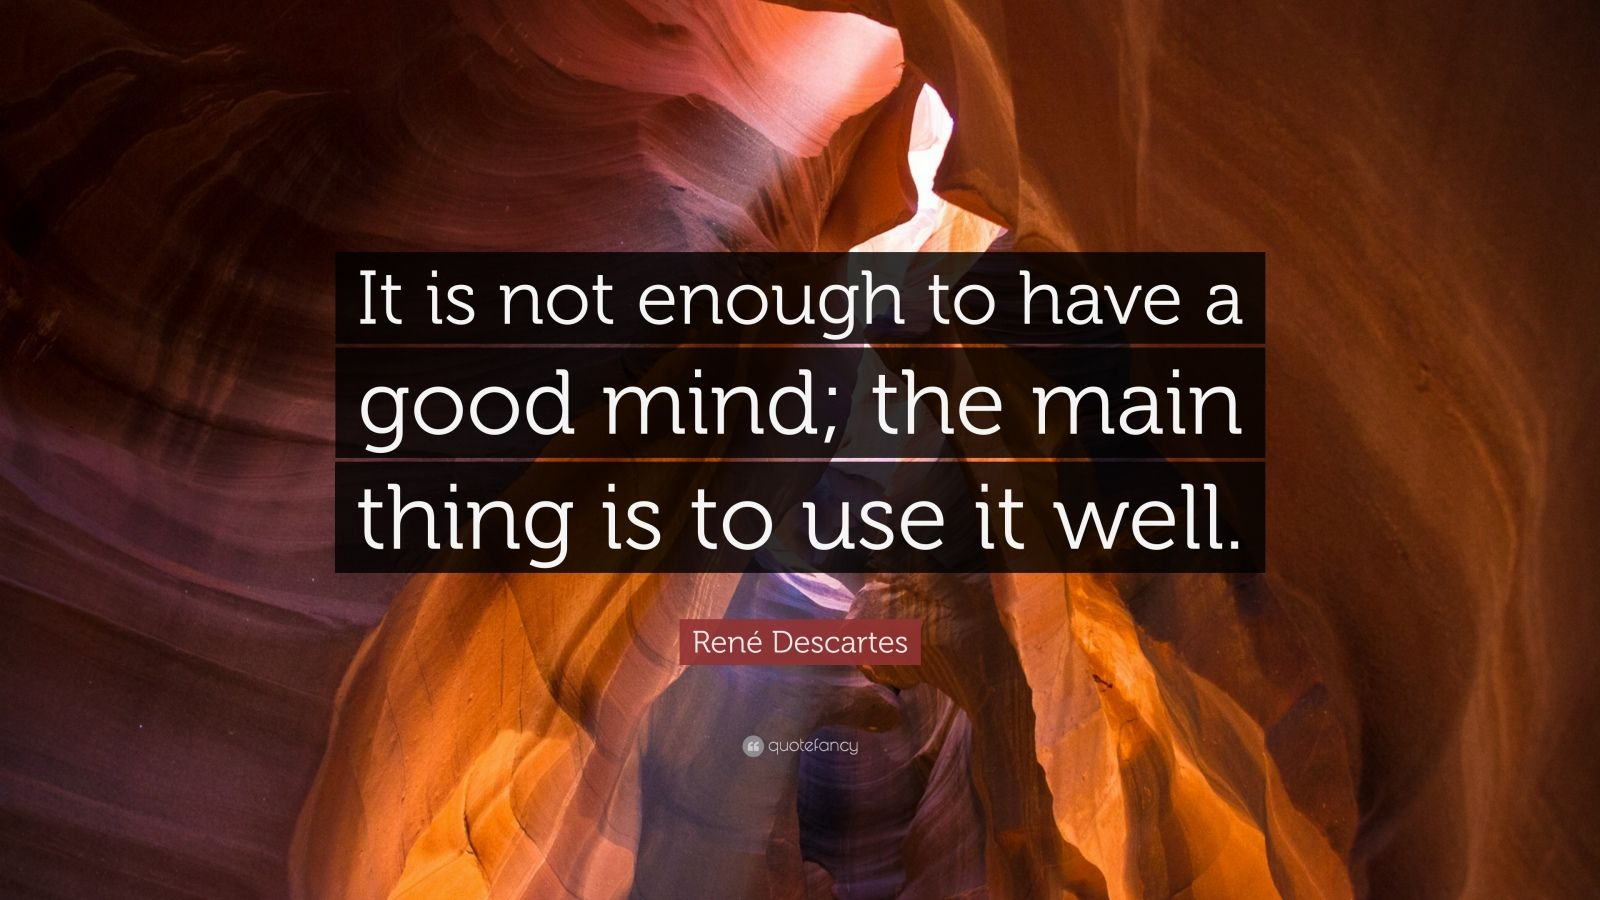 """René Descartes Quote: """"It is not enough to have a good mind; the main thing is to use it well."""""""